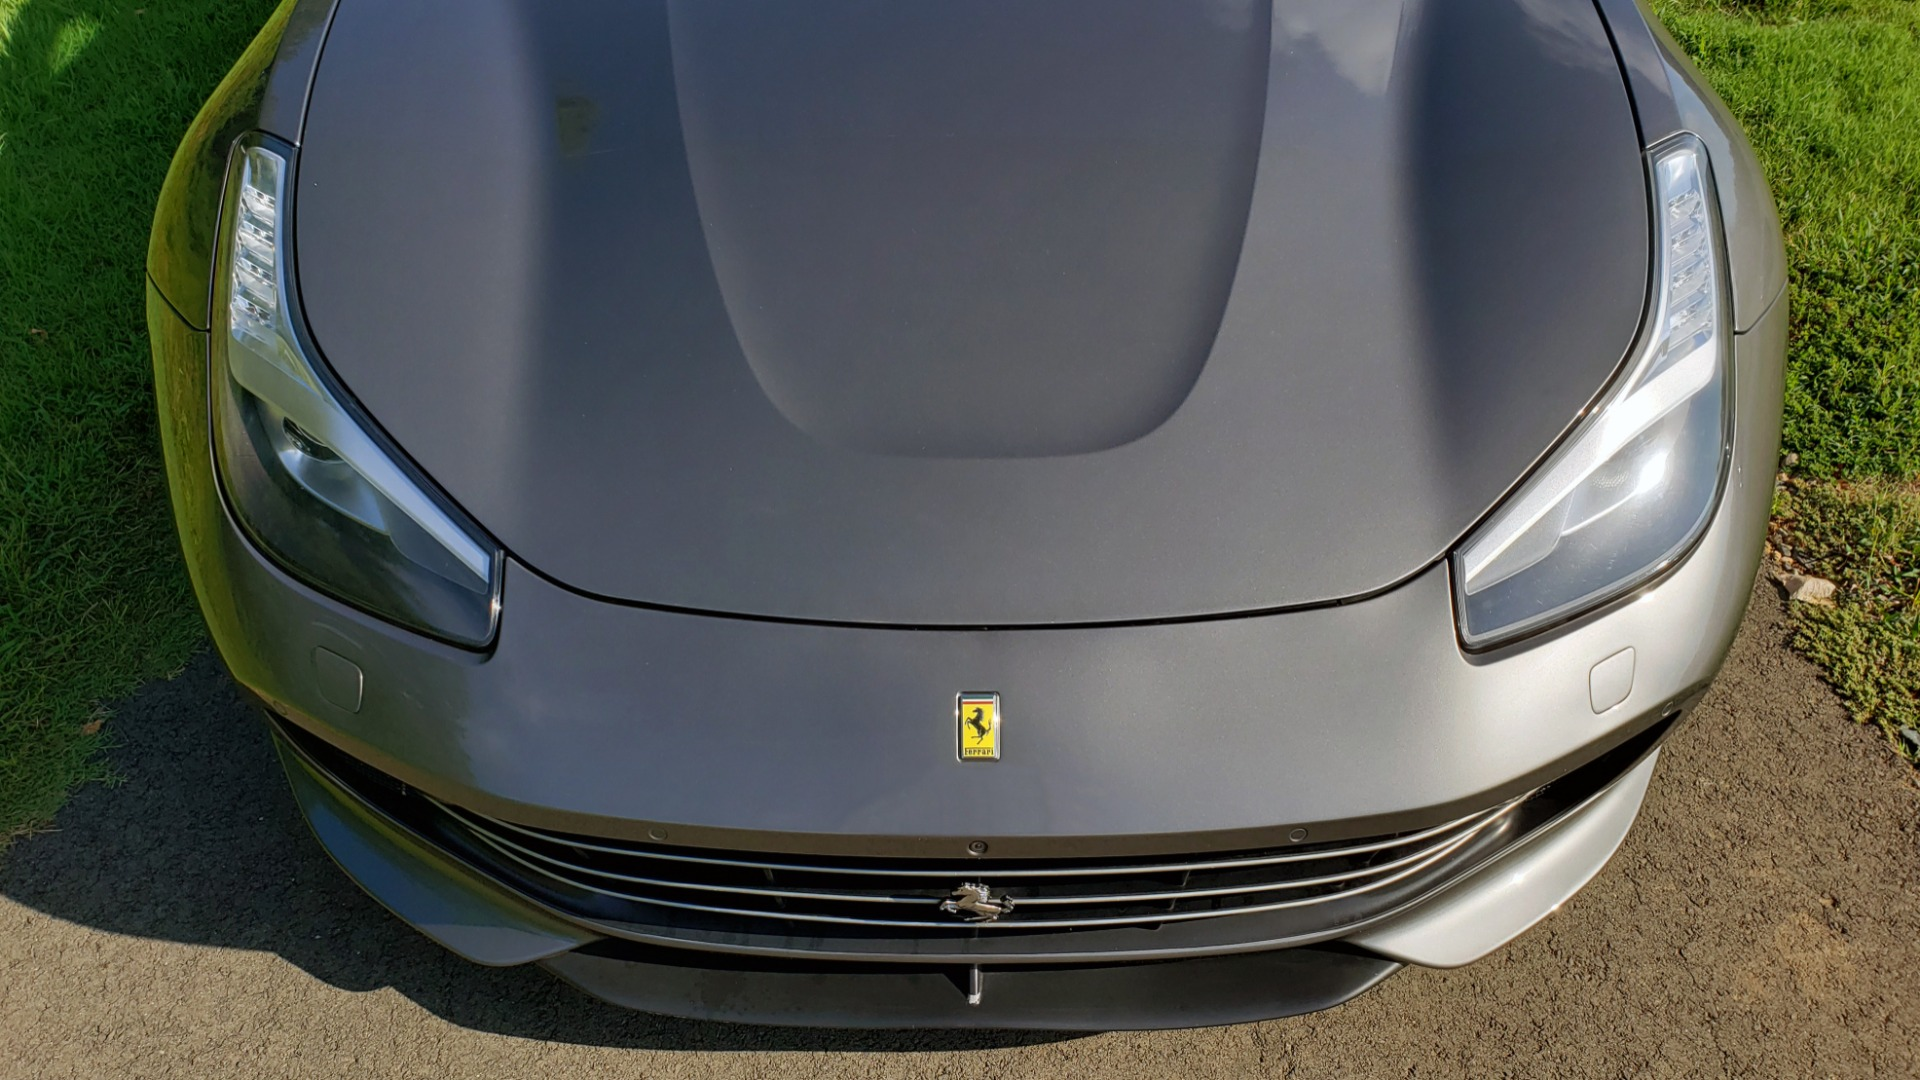 Used 2017 Ferrari GTC4 LUSSO AWD / PANO-ROOF / APPLE CAR PLAY / SUSP LIFT / JBL SOUND for sale $188,999 at Formula Imports in Charlotte NC 28227 16